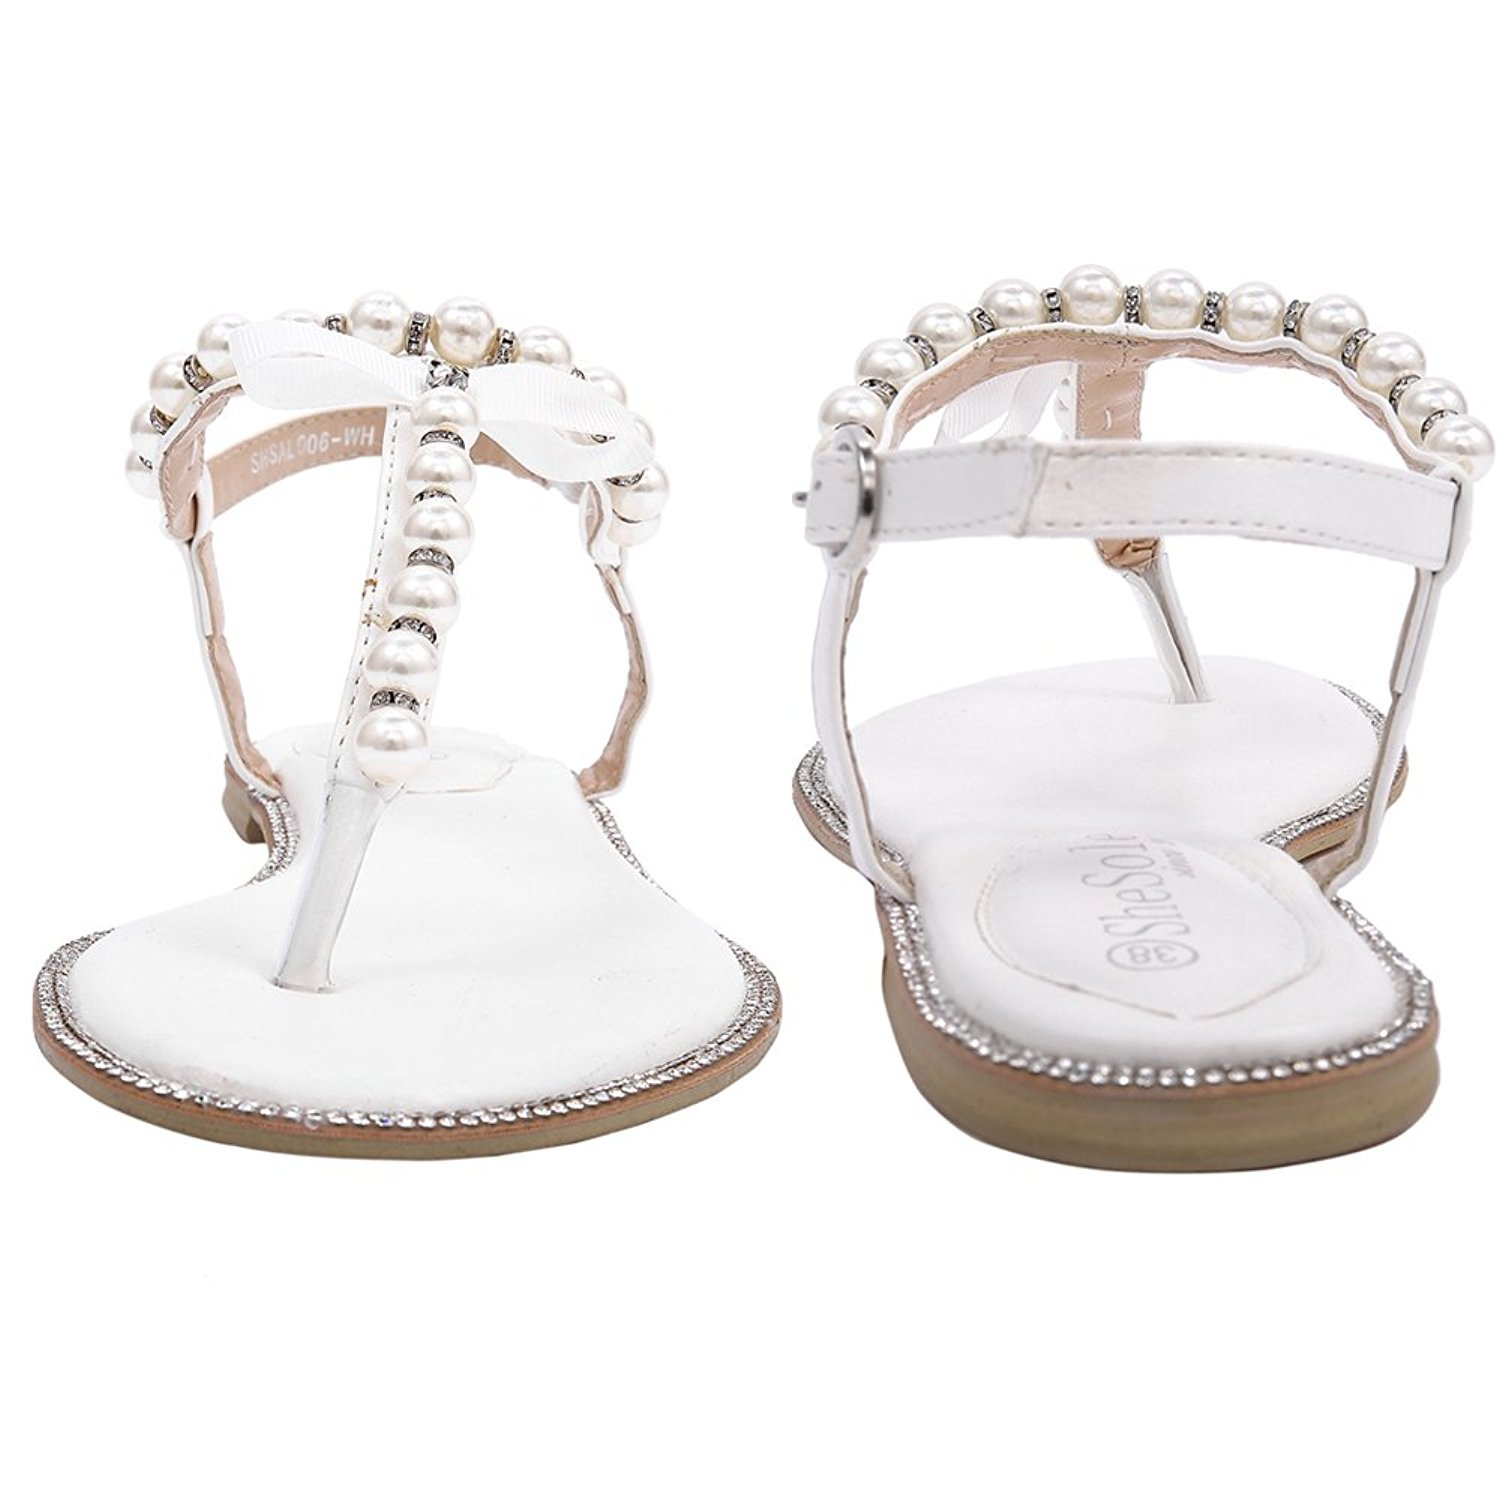 SheSole Women's Flat White Pearl Beach Wedding Sandals Bridal Shoes US 8 by SheSole (Image #2)